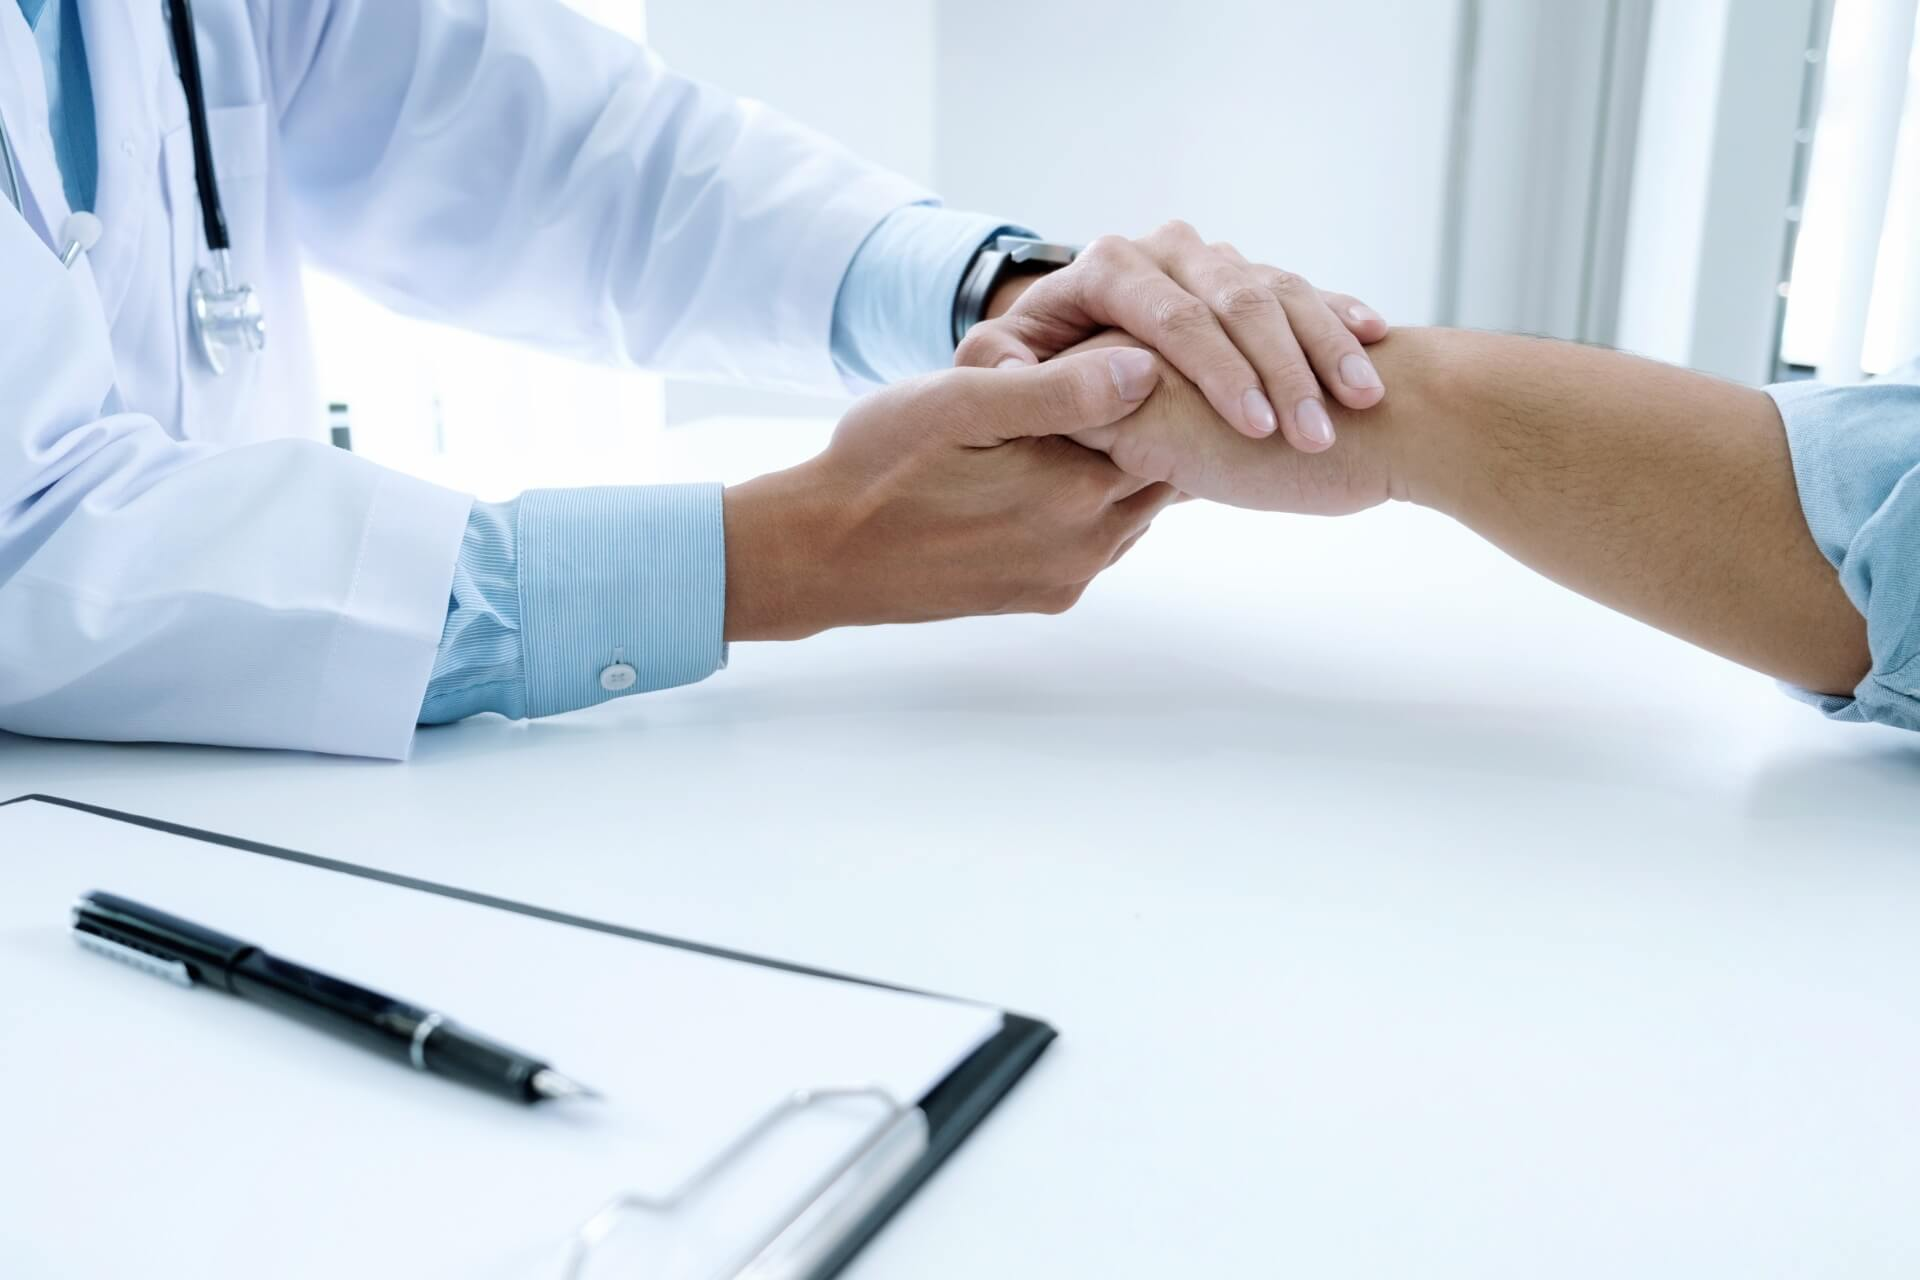 Doctor and patient holding hands